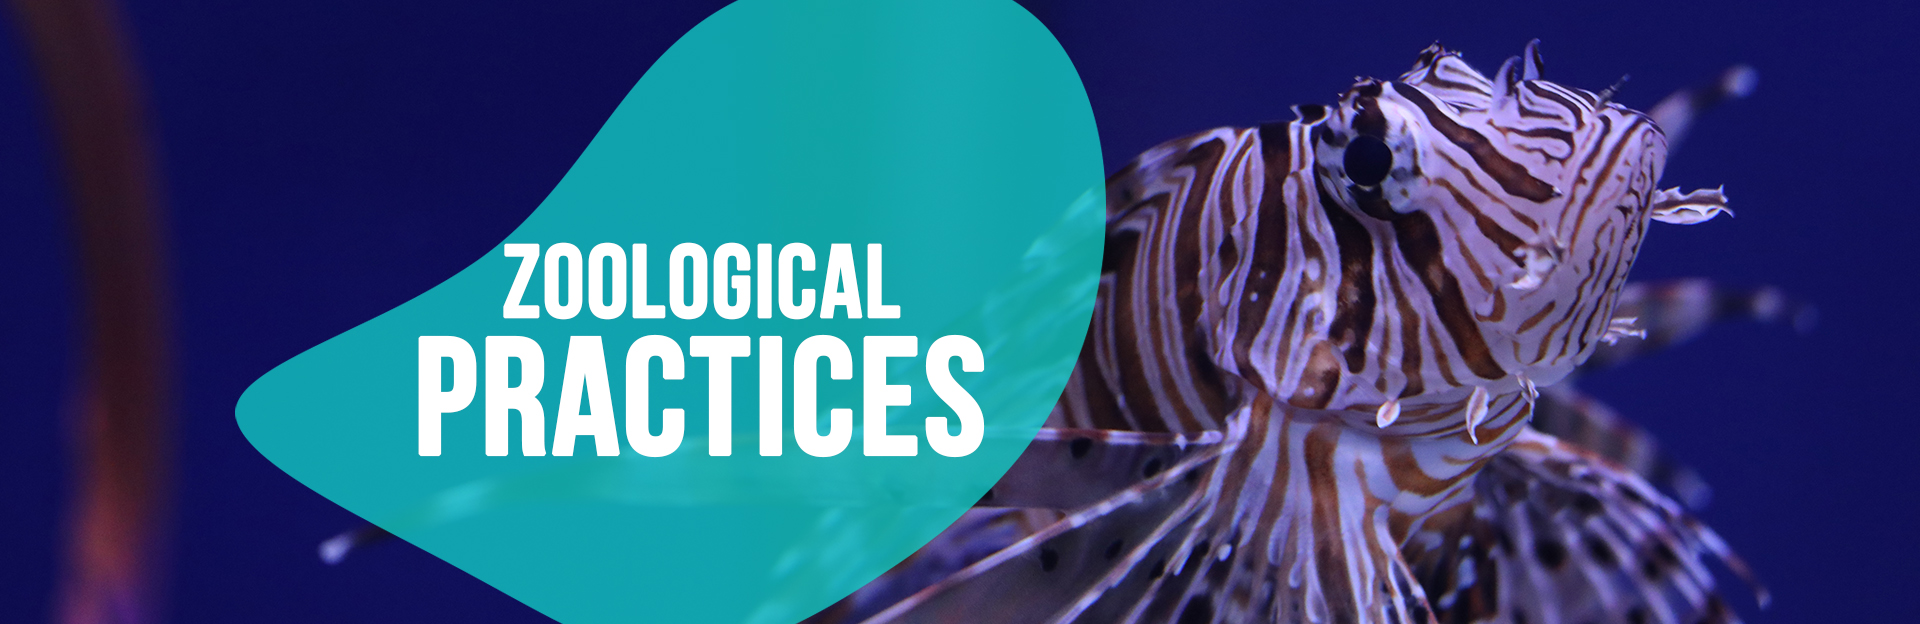 Header image for zoological Practices page